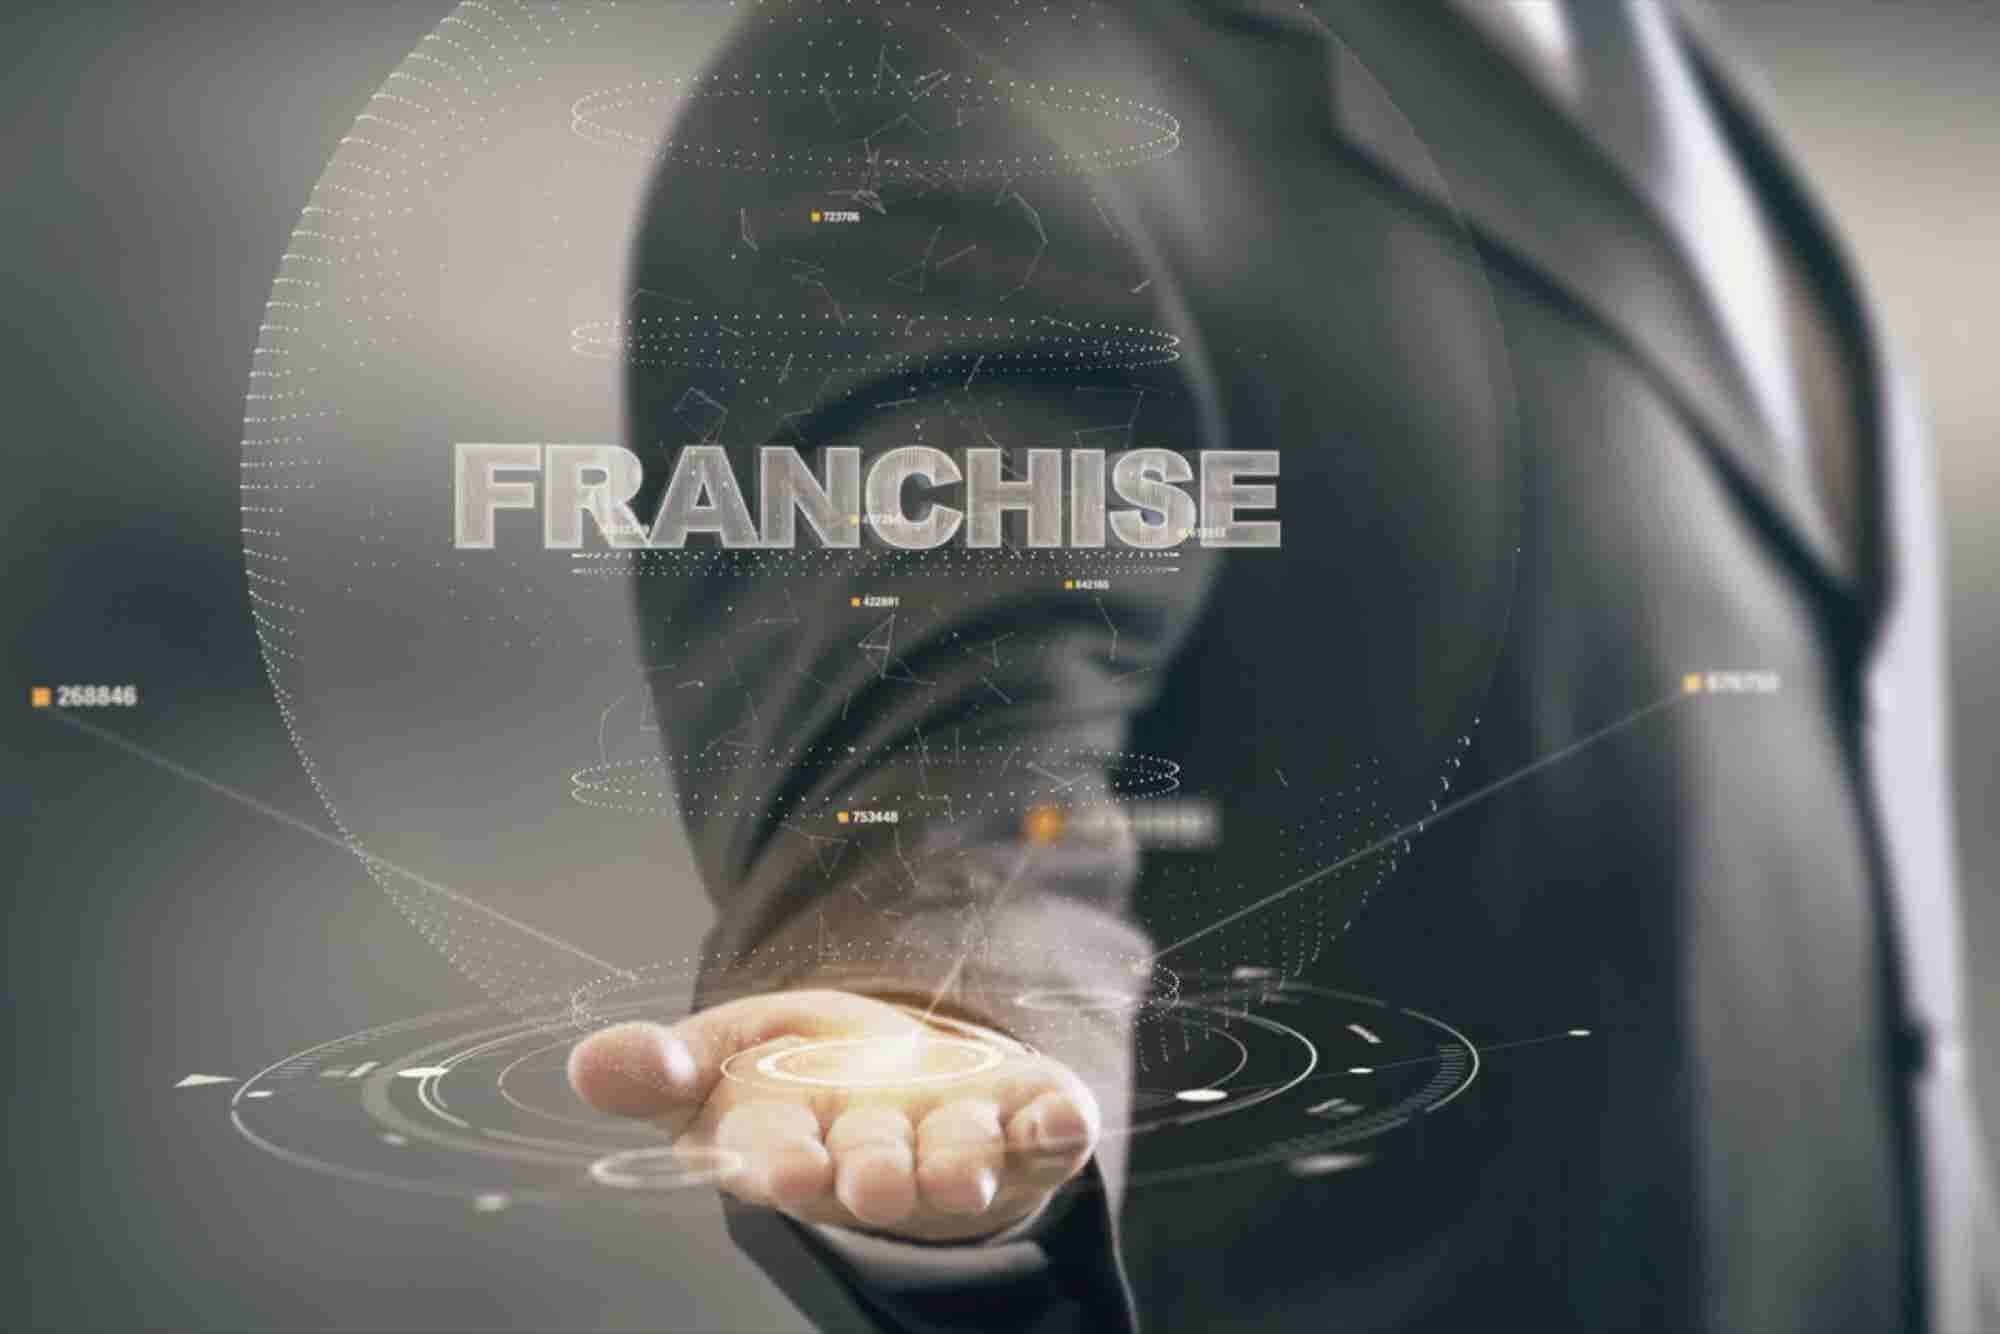 The Top 5 New Franchises of 2018